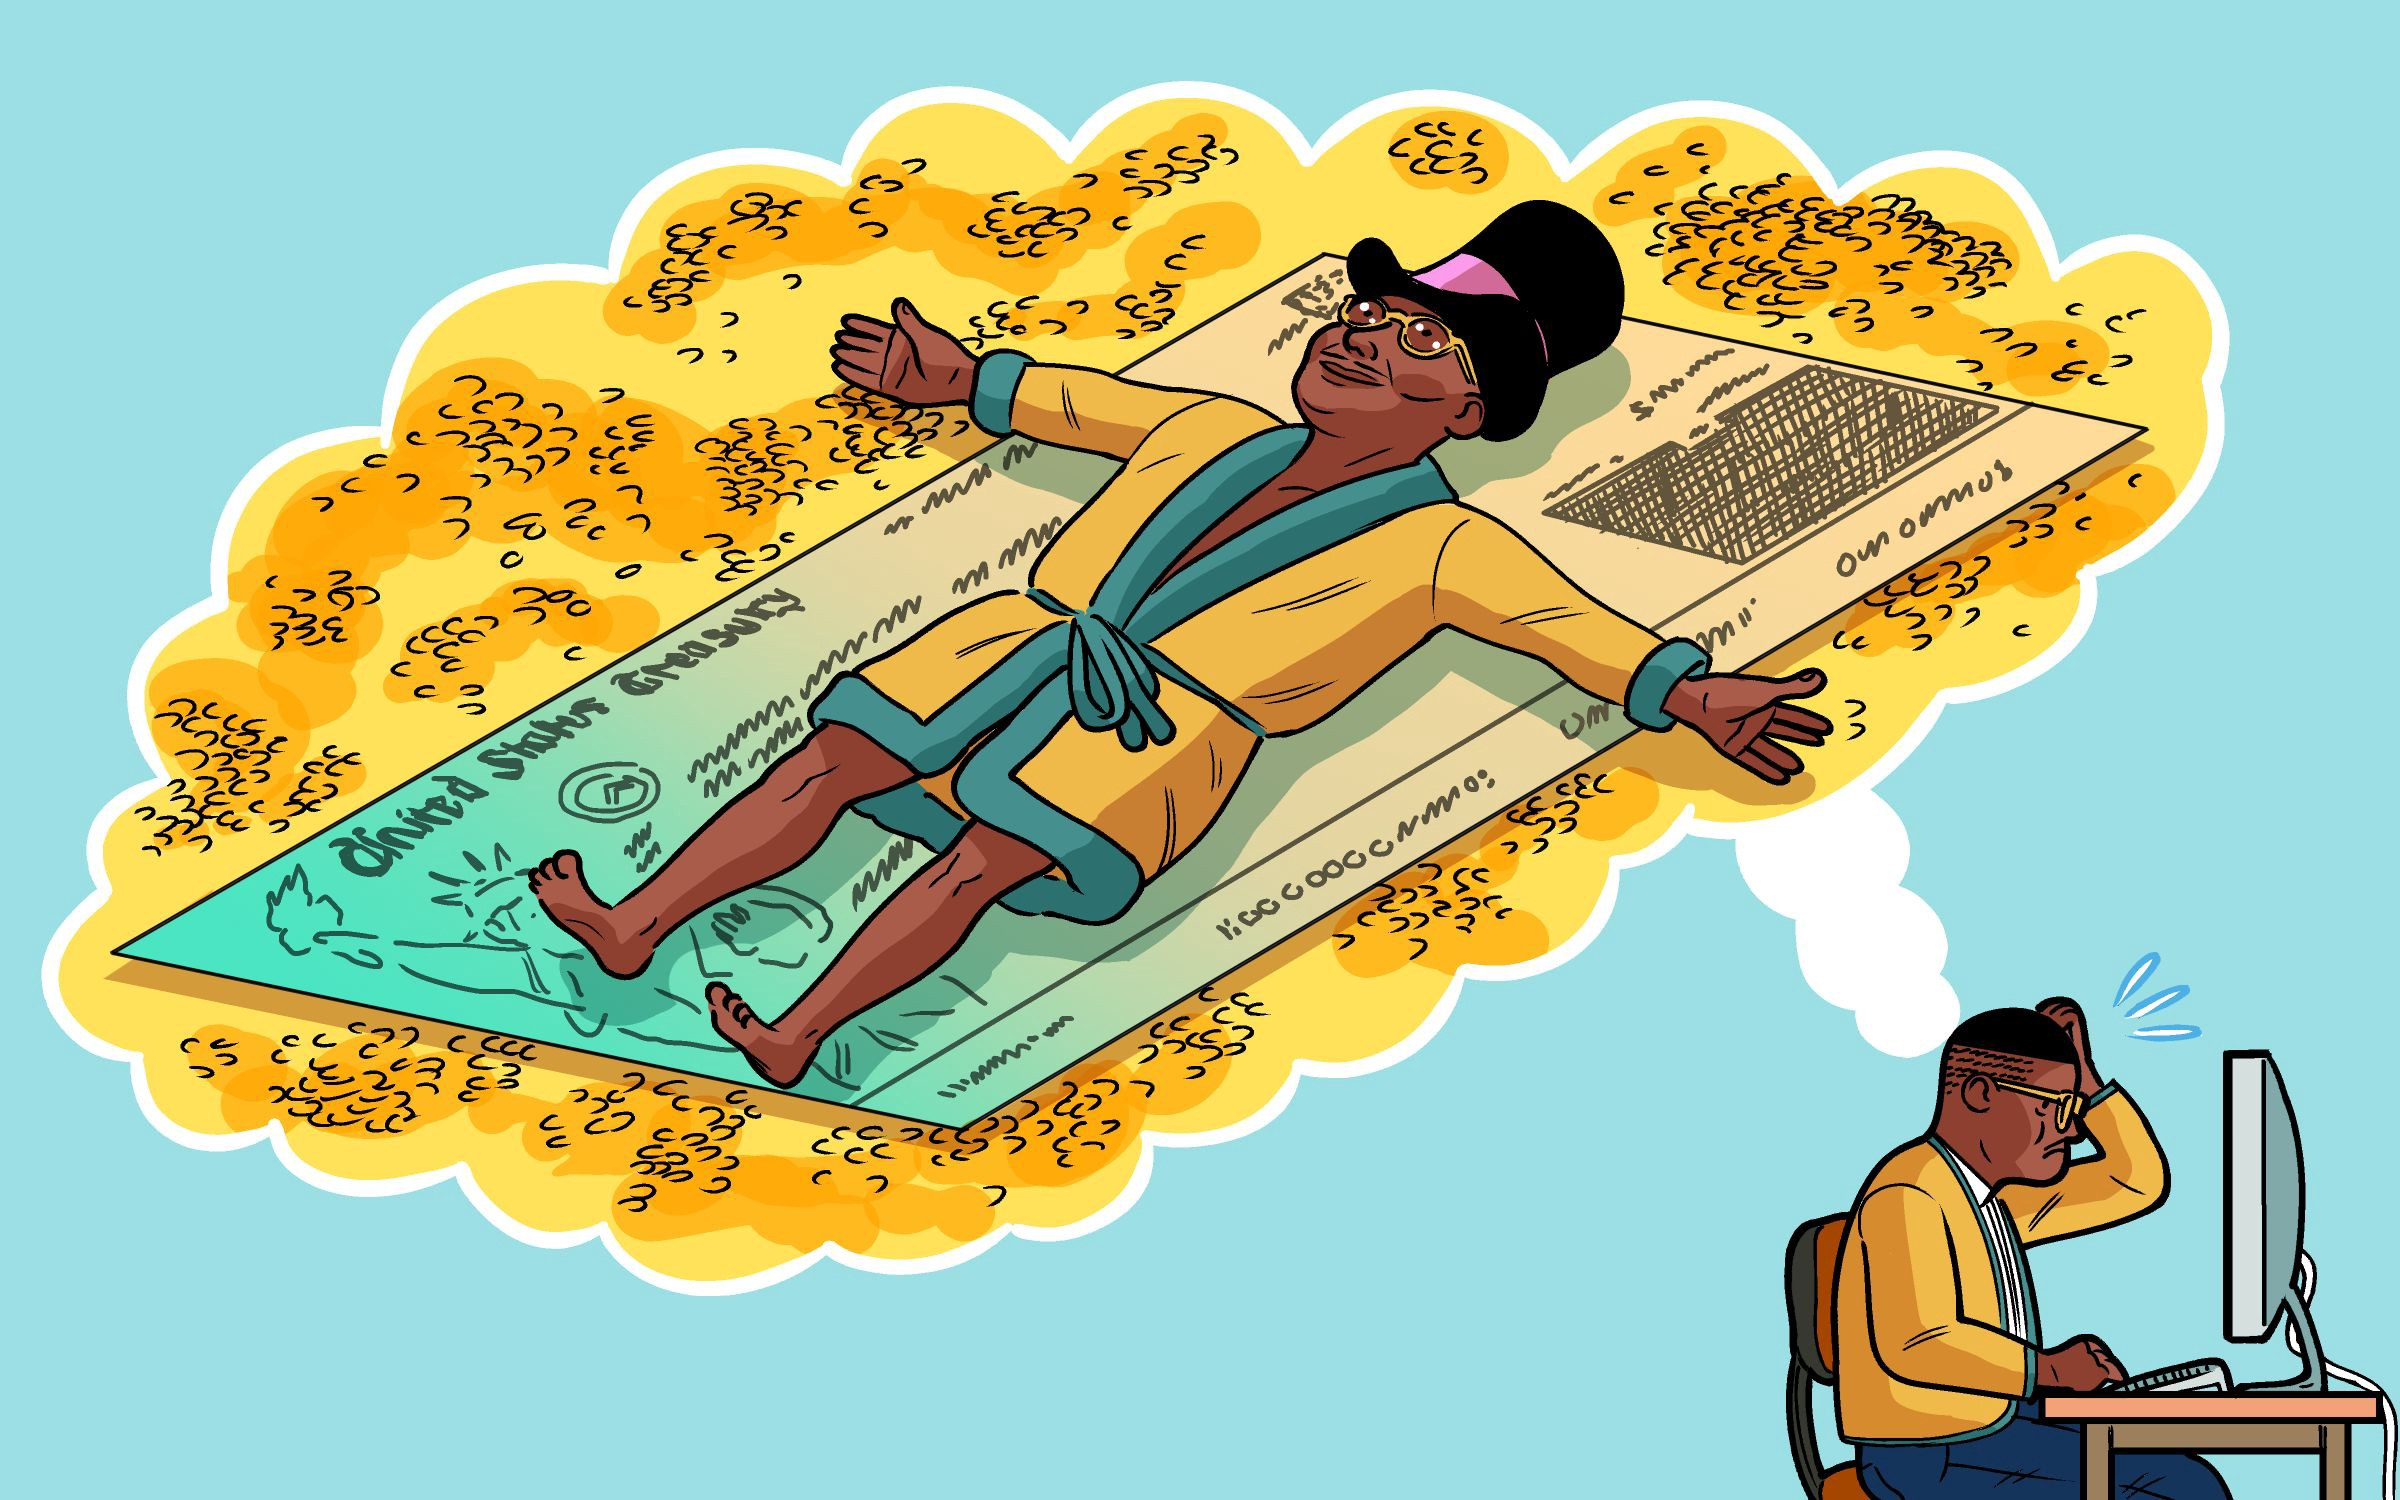 Illustration of a man working at a computer daydreaming of being a rich man lying on a big check.